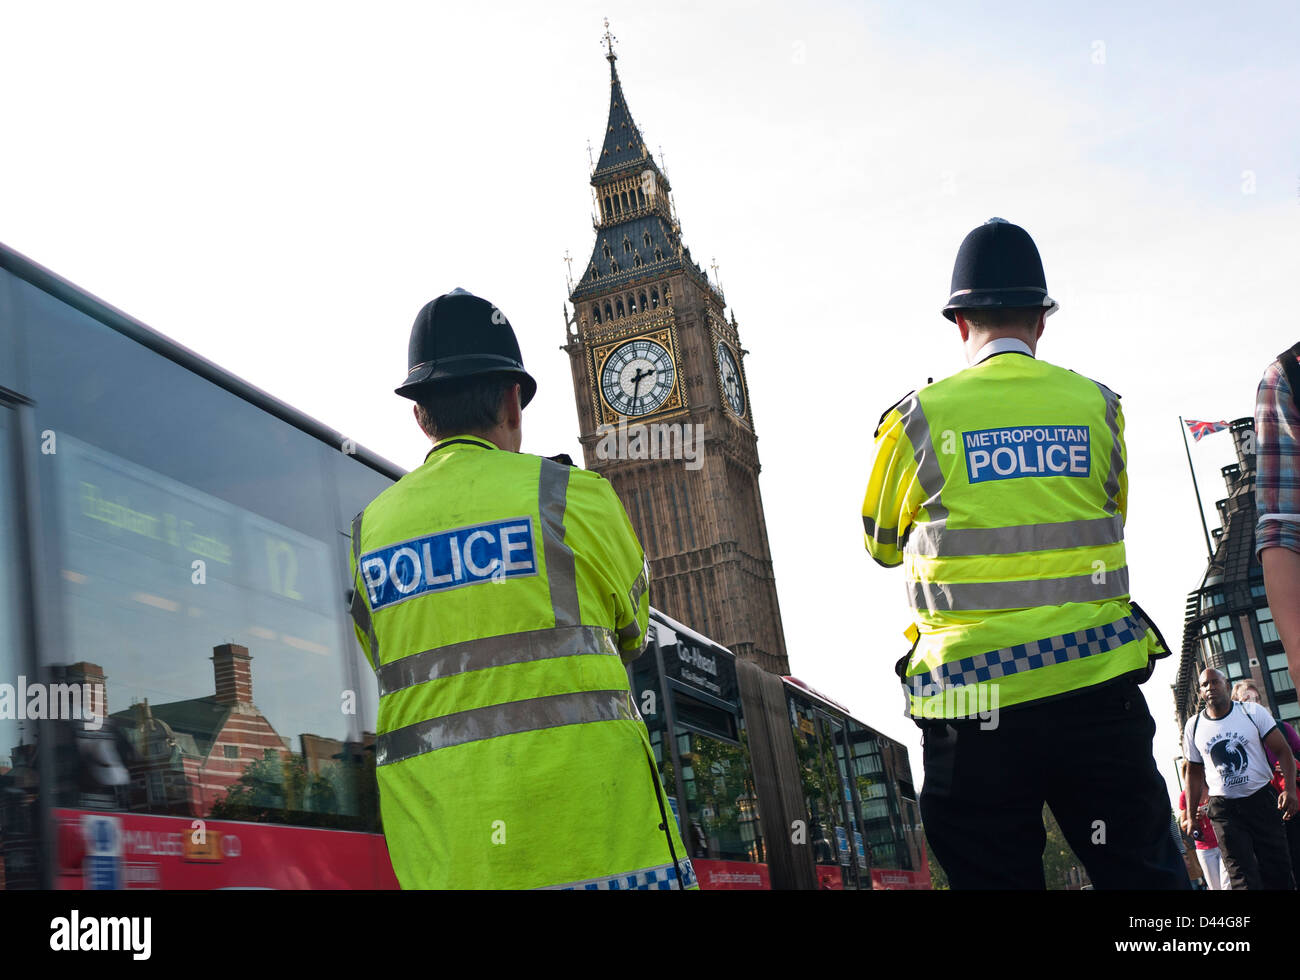 Metropolitan Police officers on duty at Westminster Bridge  Houses of Parliament London UK - Stock Image